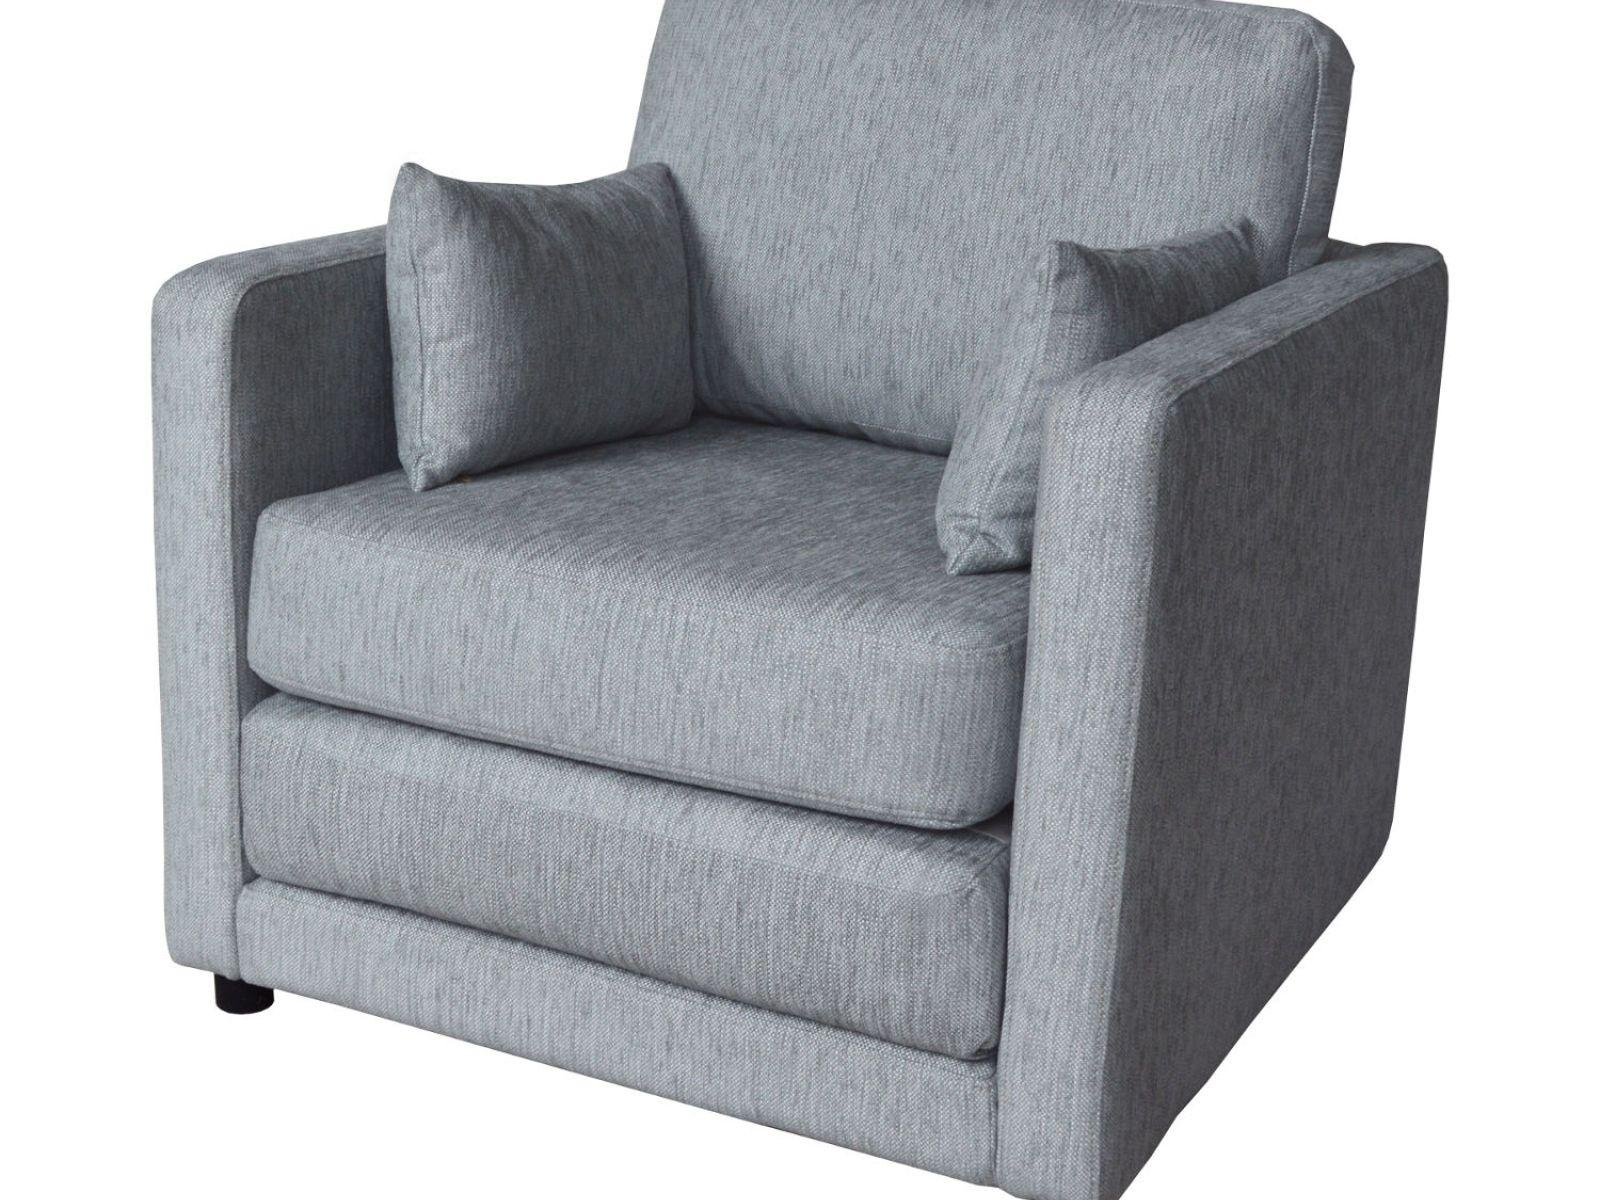 ▻ Sofa : 39 Fancy Sofa With Sofa Bed Chair About Remodel Bedroom Intended For Cheap Single Sofa Bed Chairs (View 12 of 20)